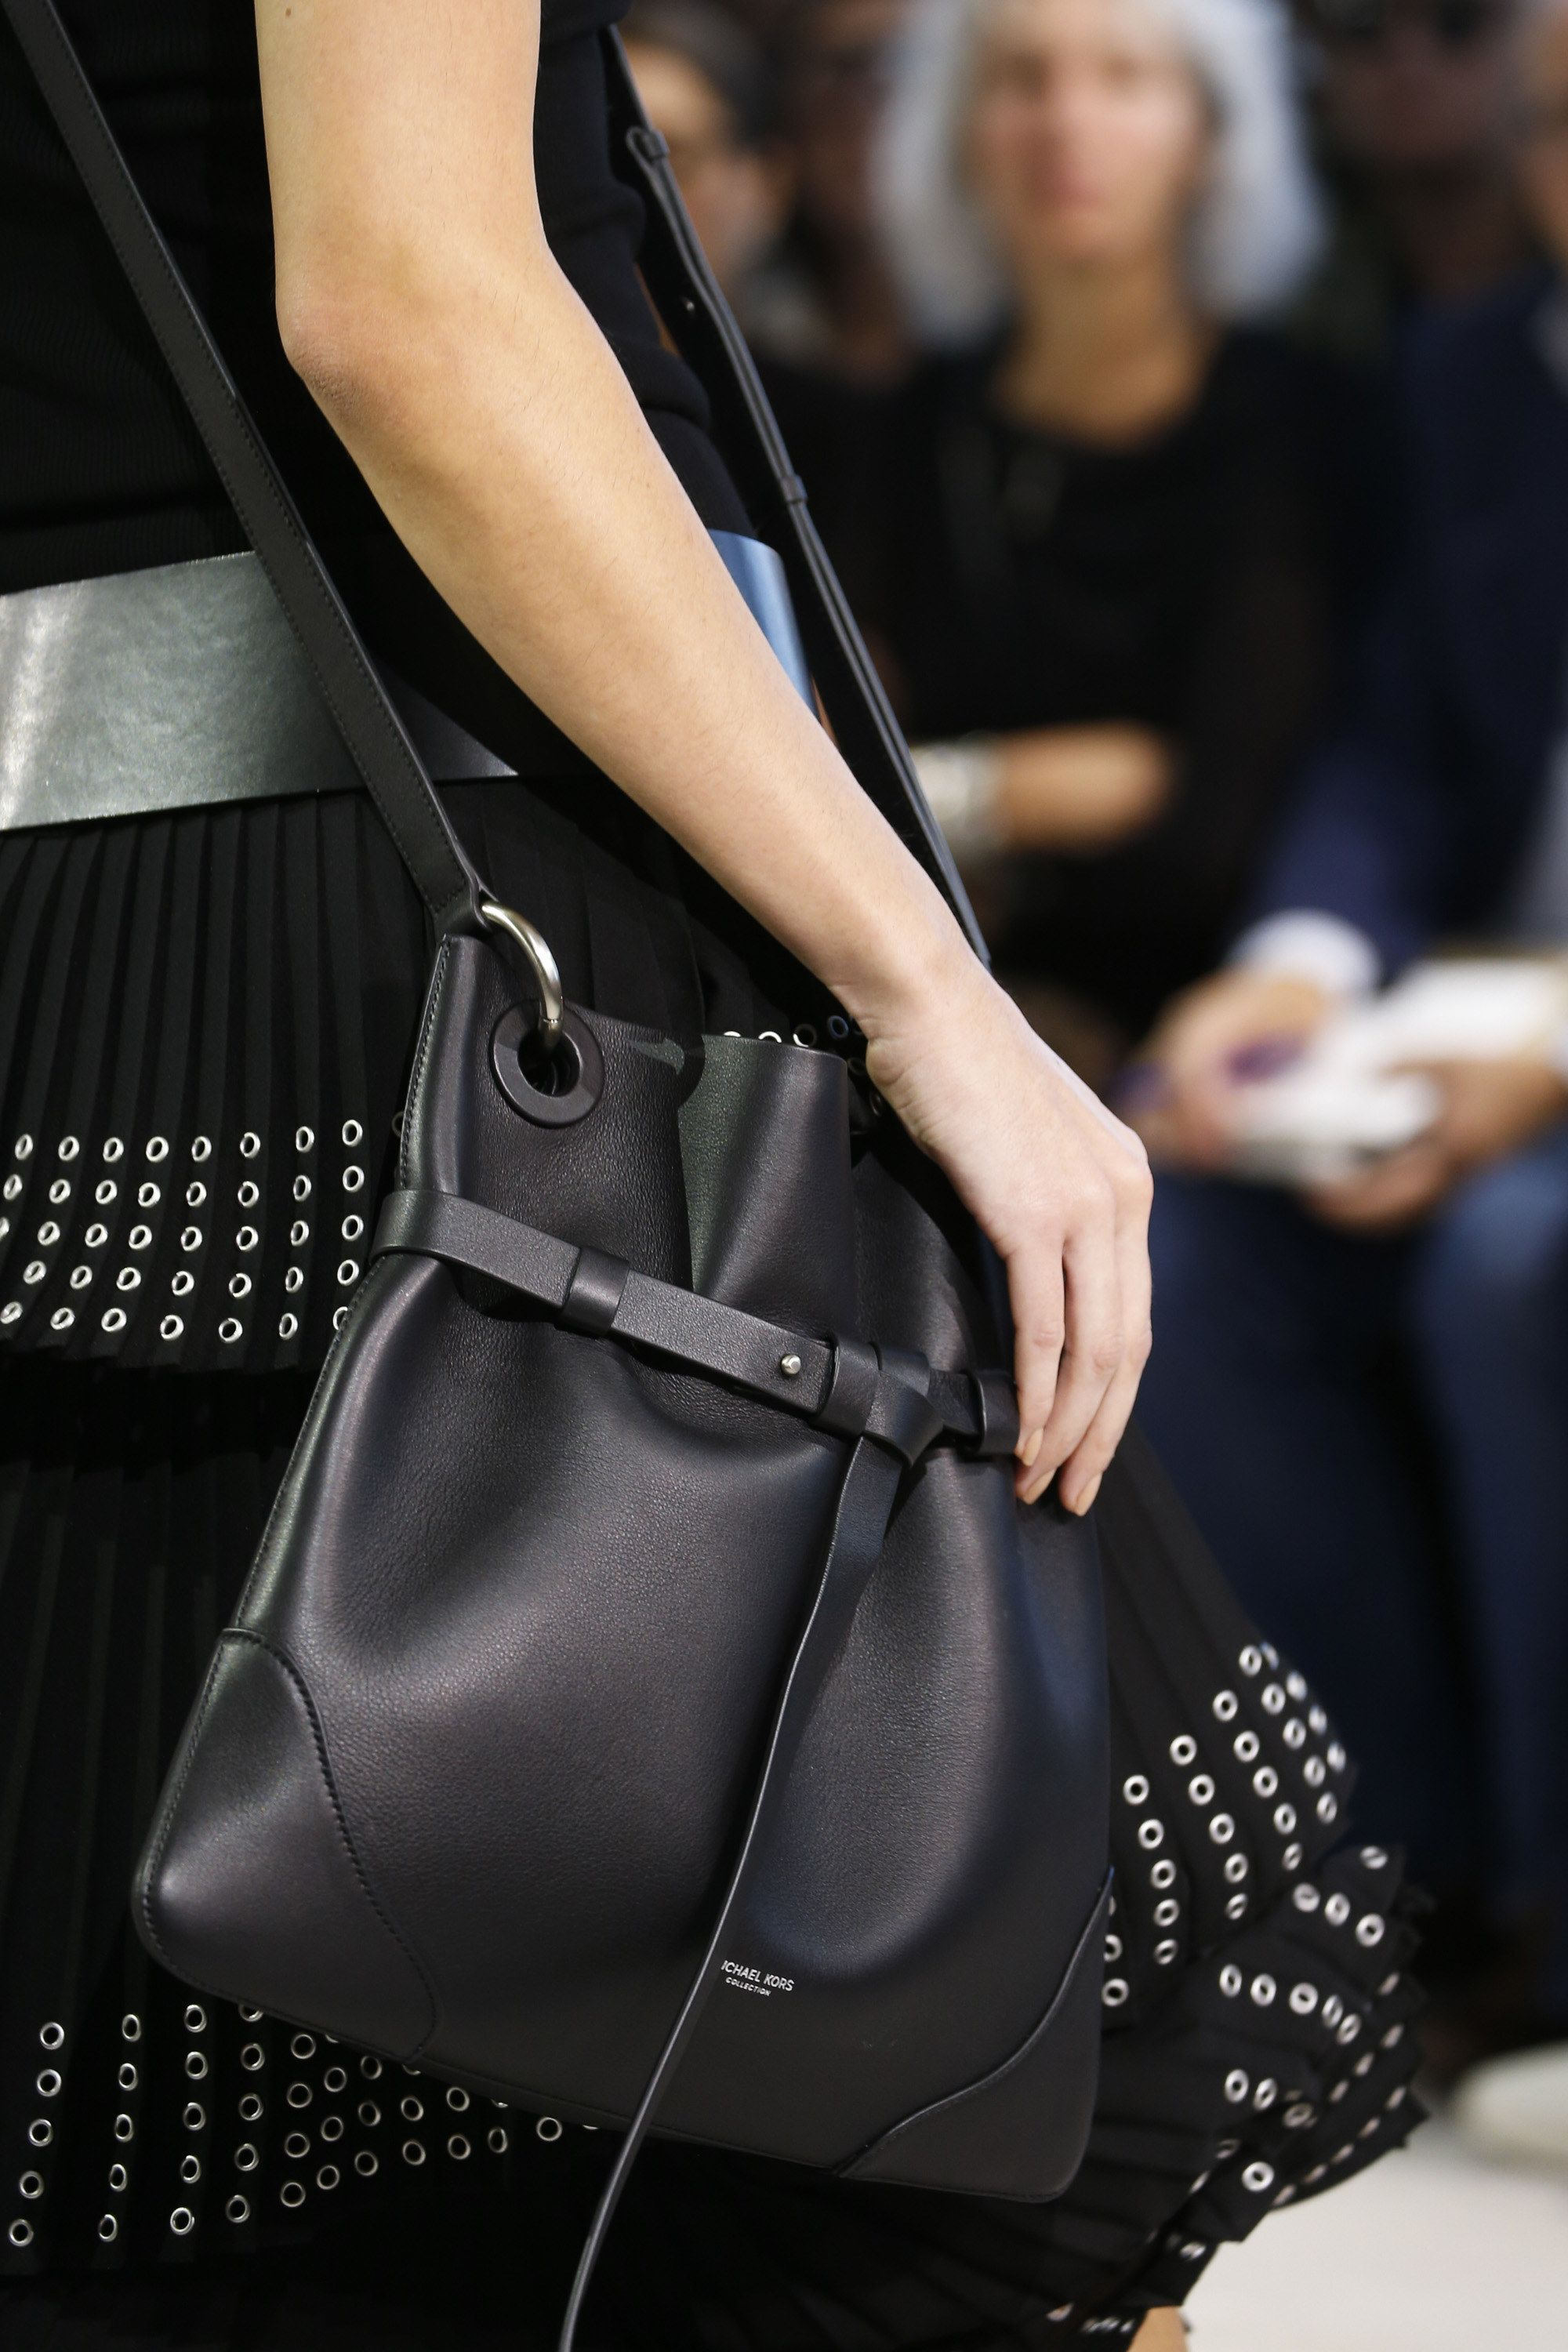 Michael Kors Collection Spring 2016 Ready-to-Wear Accessories Photos - Vogue d90f5b5ed6c40